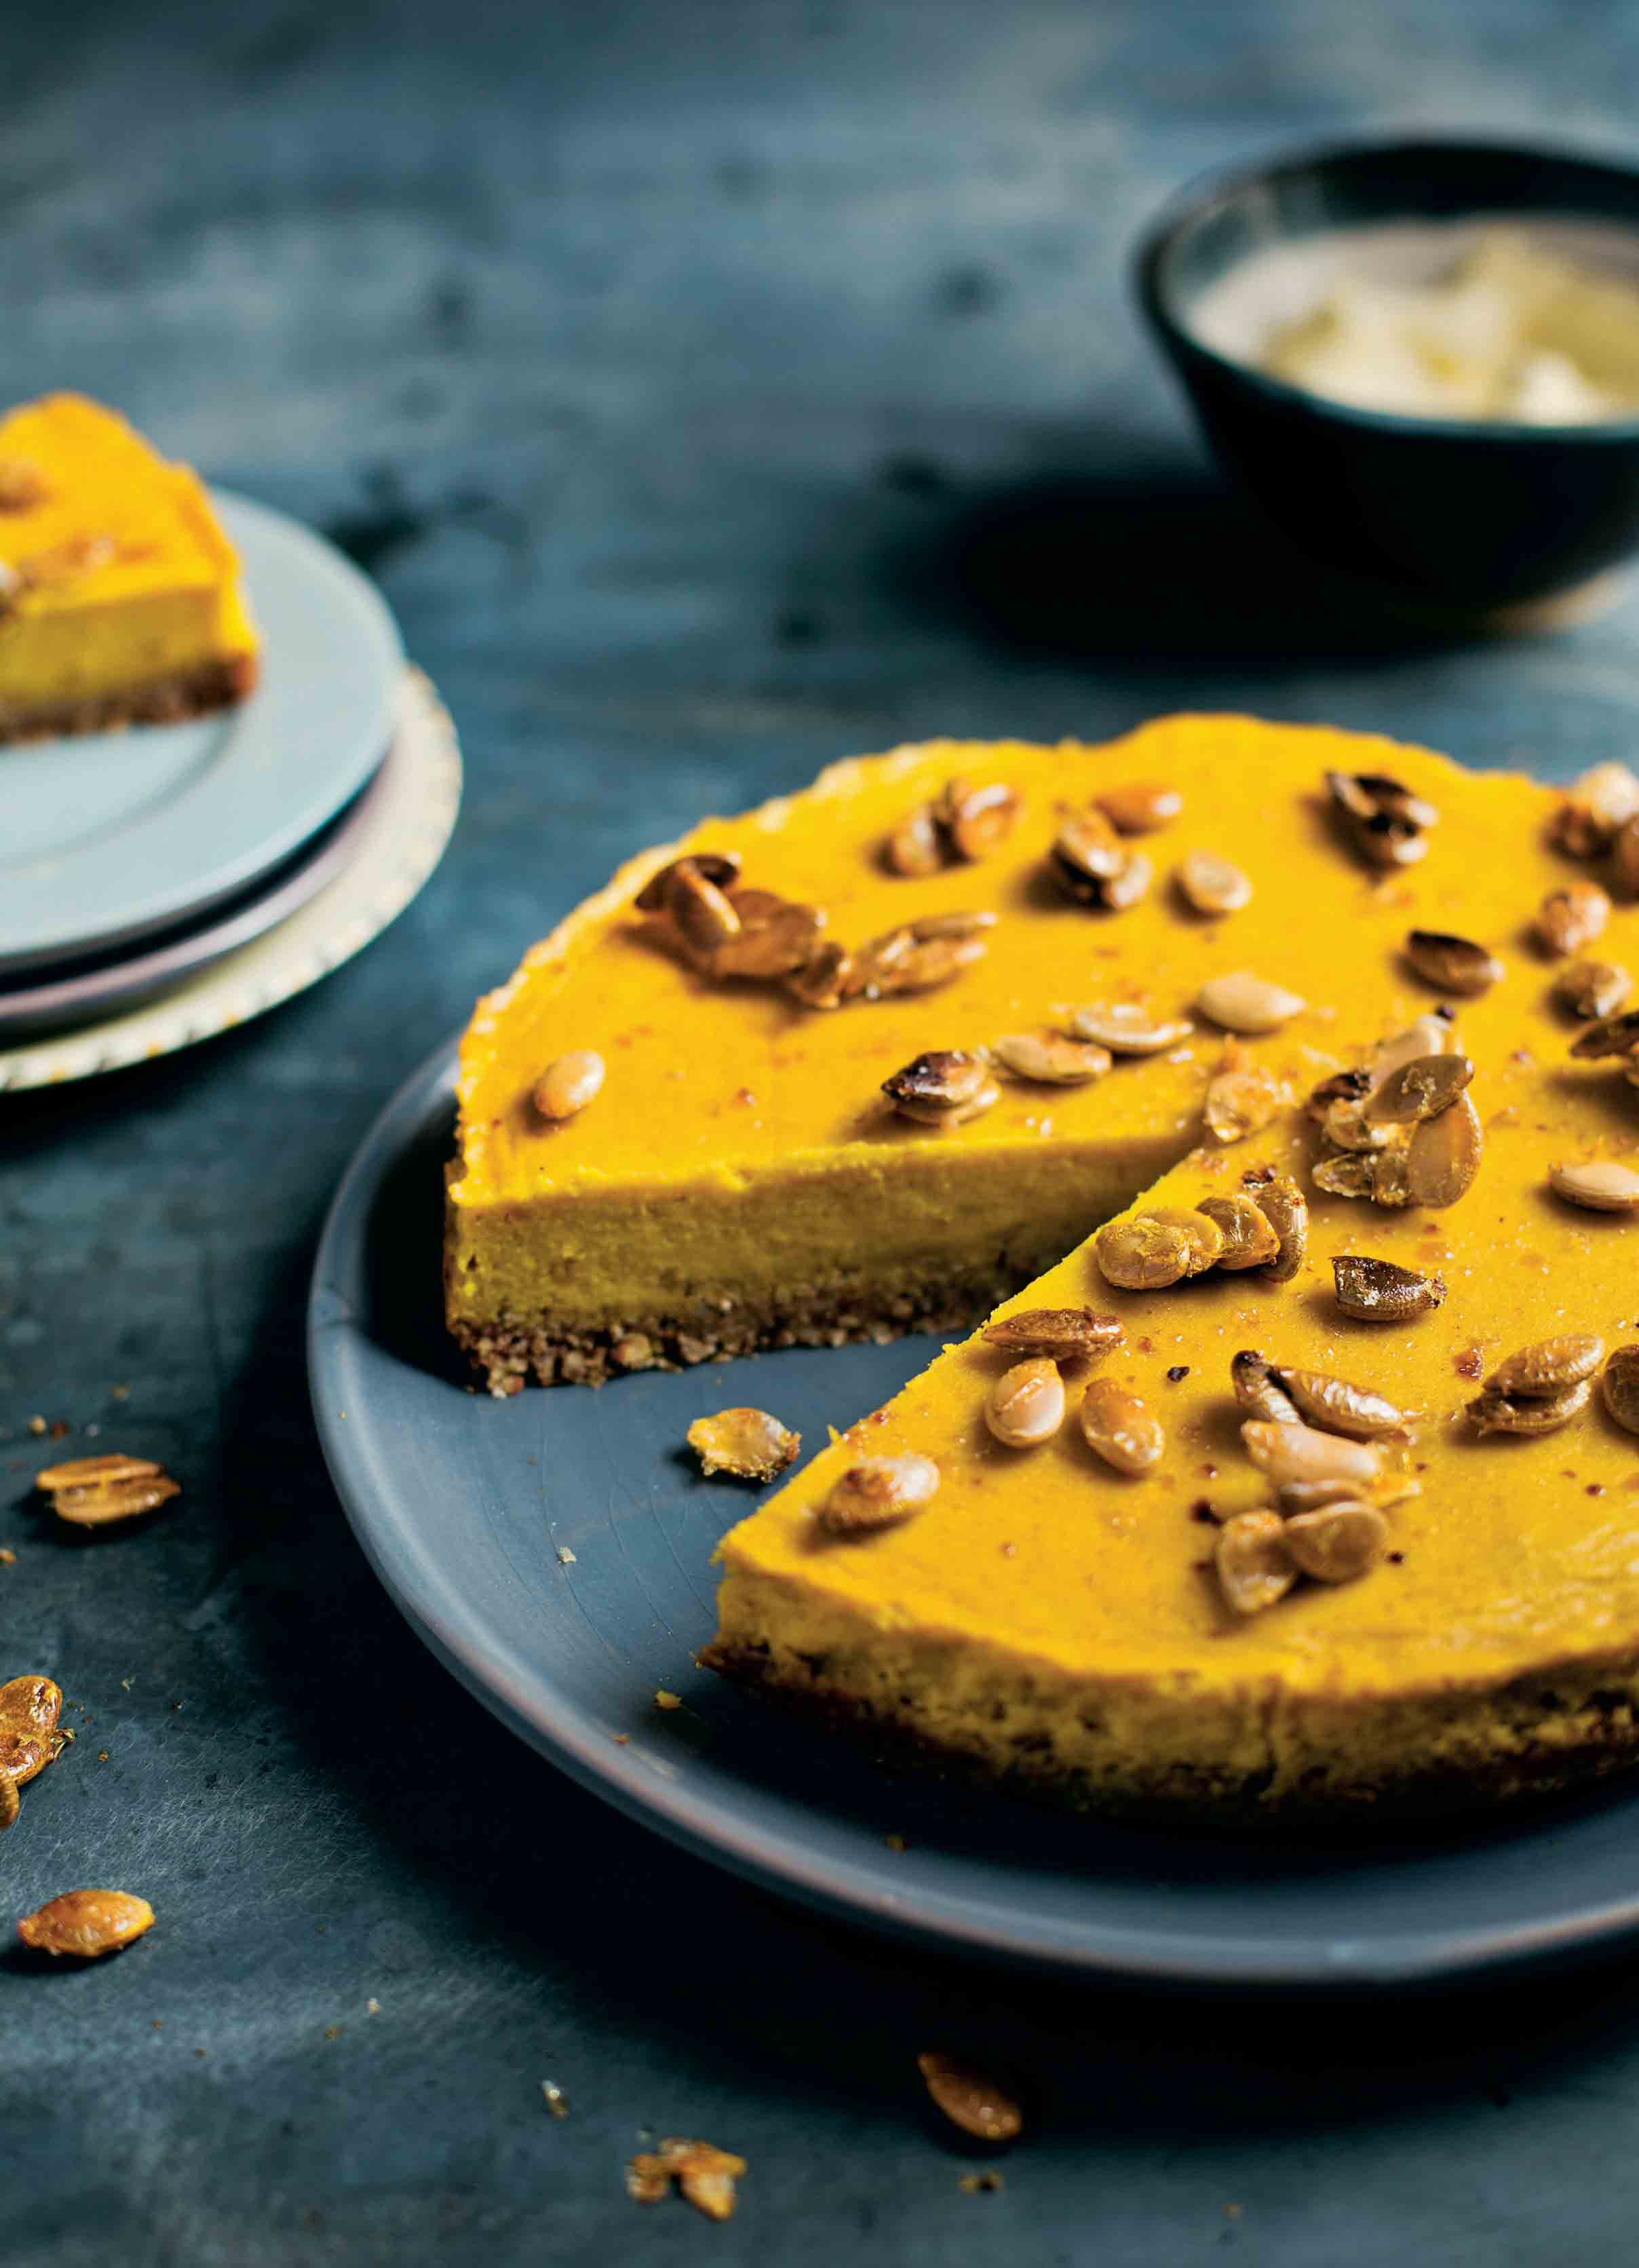 Pumpkin pie with cardamom and maple syrup